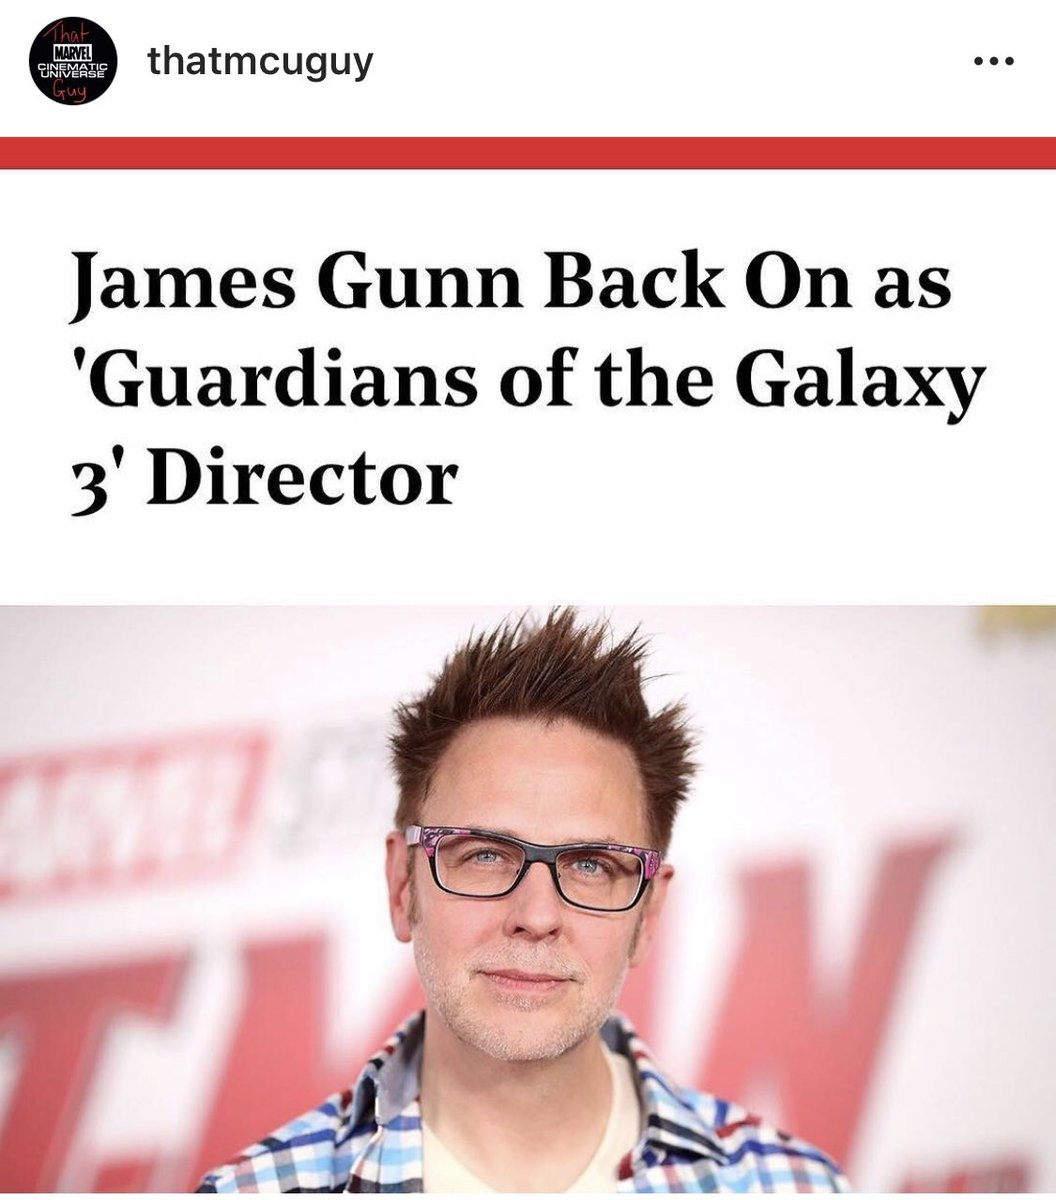 ThatMCUGuy's photo on #GuardiansOfTheGalaxy